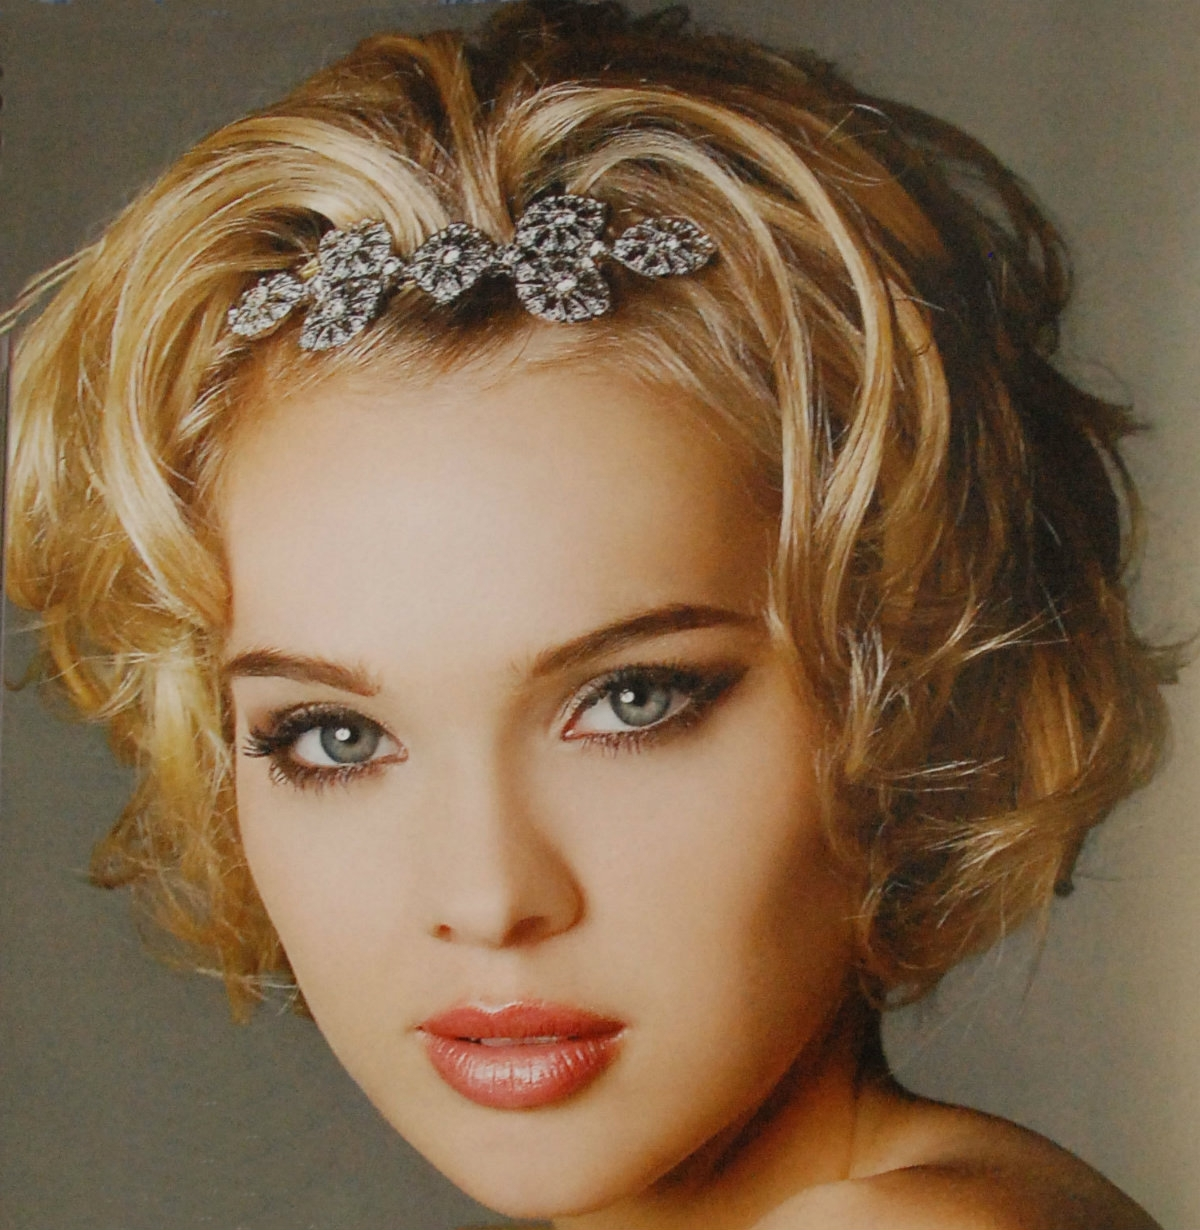 2017 Wedding Hairstyles For Short Hair With Bangs Within Wedding Hairstyles For Short Hair (View 11 of 15)